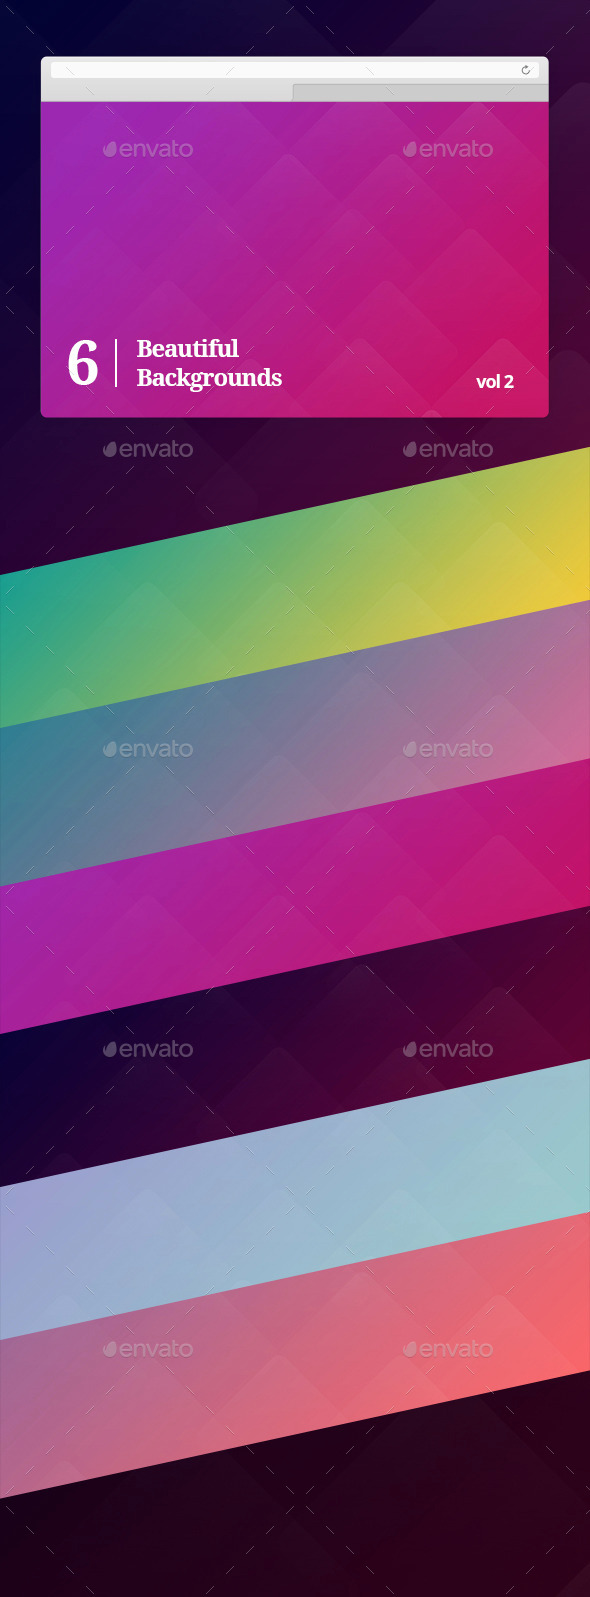 Beautiful Backgrounds Vol 2 - Abstract Backgrounds